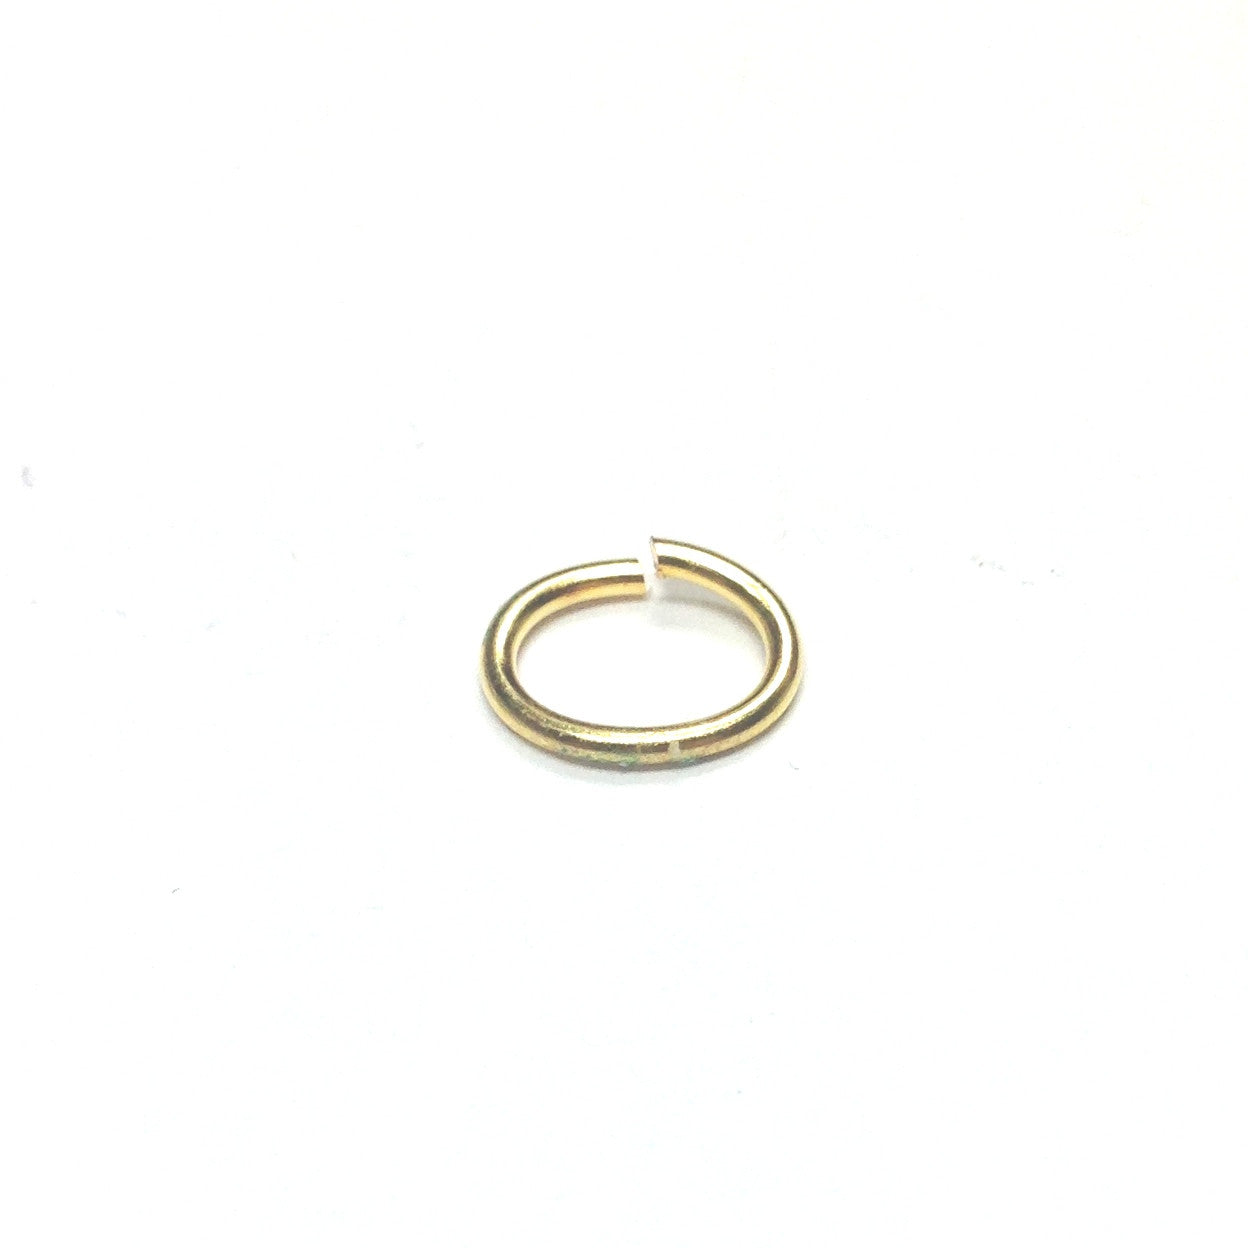 00 (6X8.5MM) .040 Oval Brass Jumpring (288 pieces)